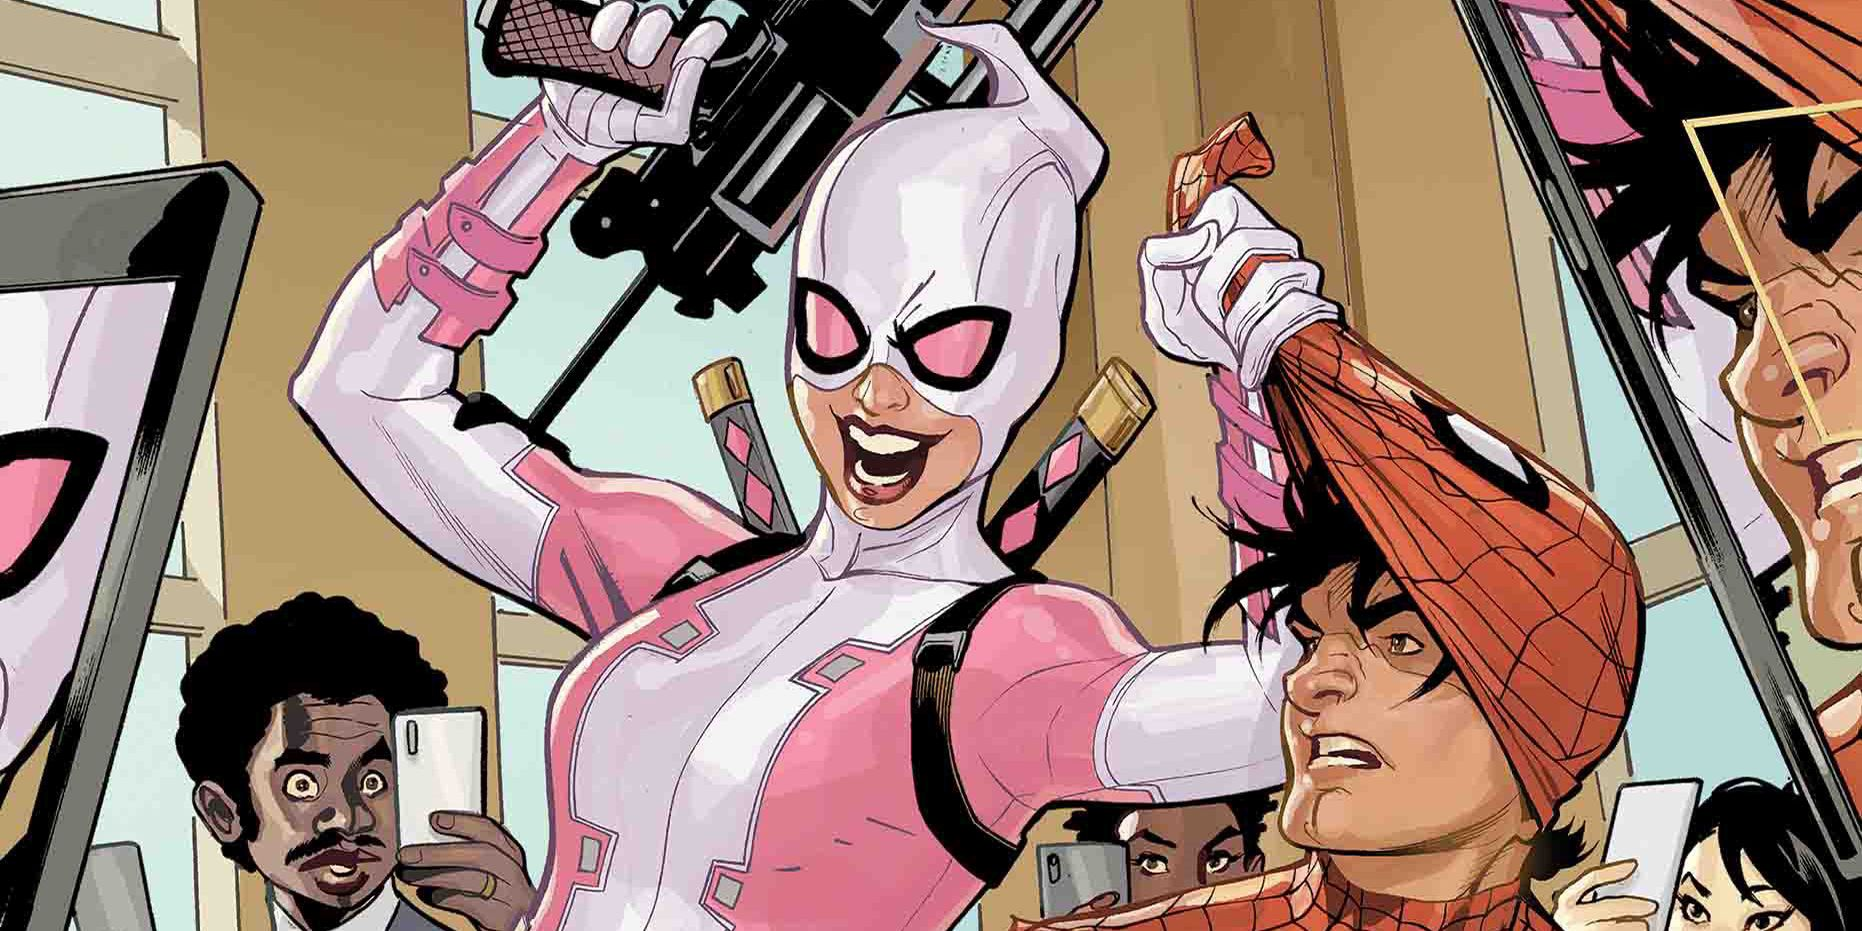 EXCLUSIVE: Gwenpool Aims to Unmask Spider-Man In New Miniseries